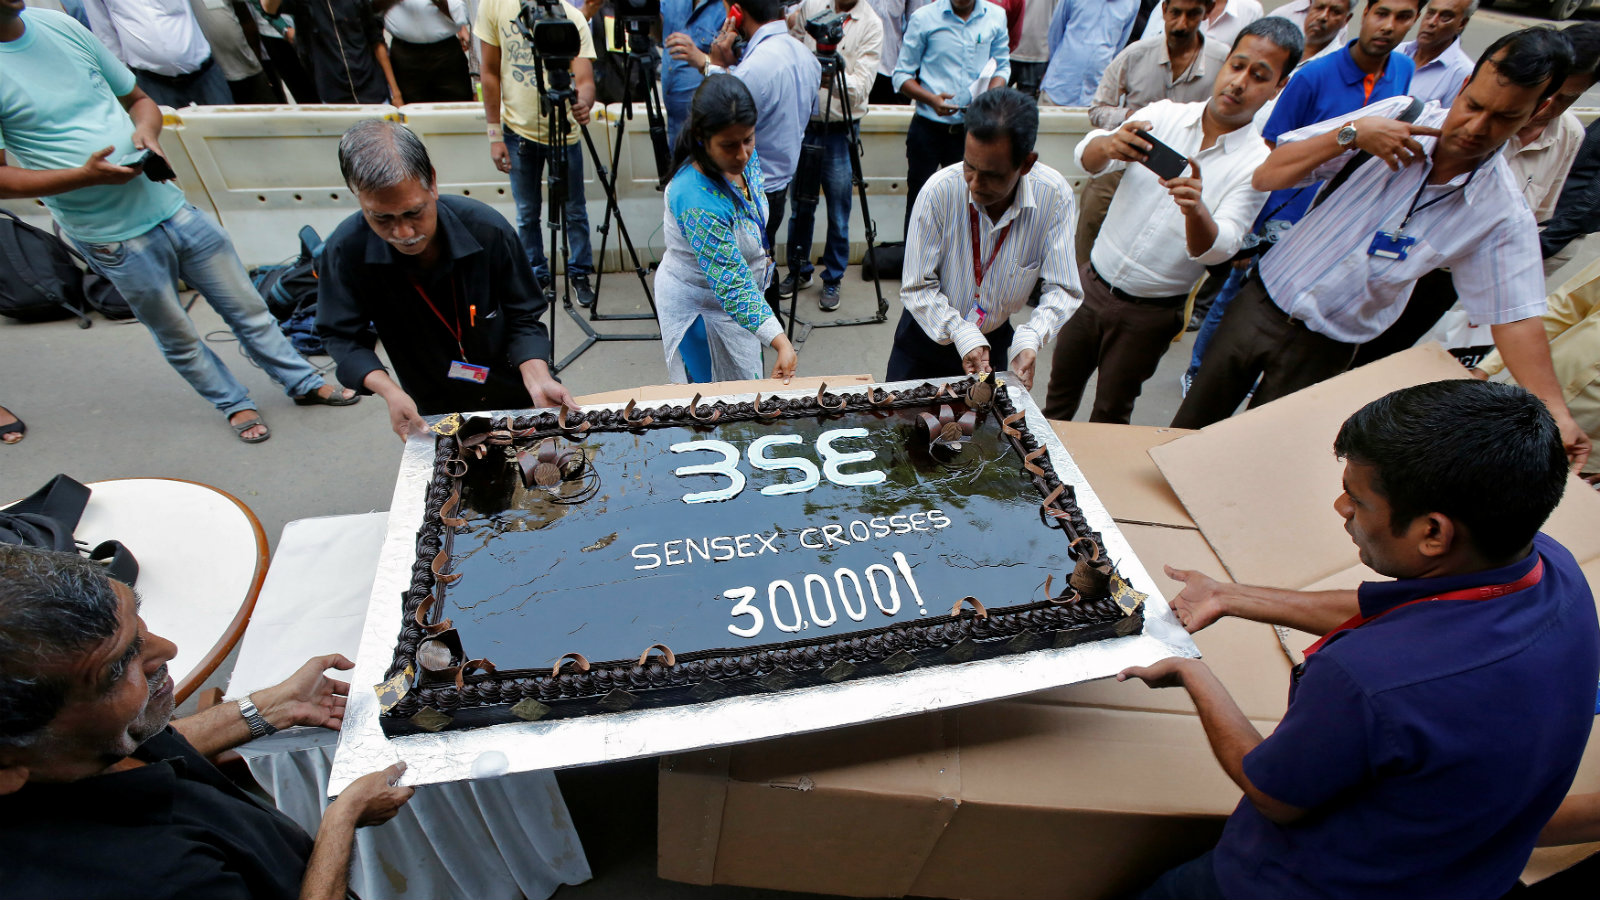 Employees of the Bombay Stock Exchange (BSE) carry a cake outside the building for the celebrations marking the Sensex index rising over 30,000, in Mumbai, India April 26, 2017.